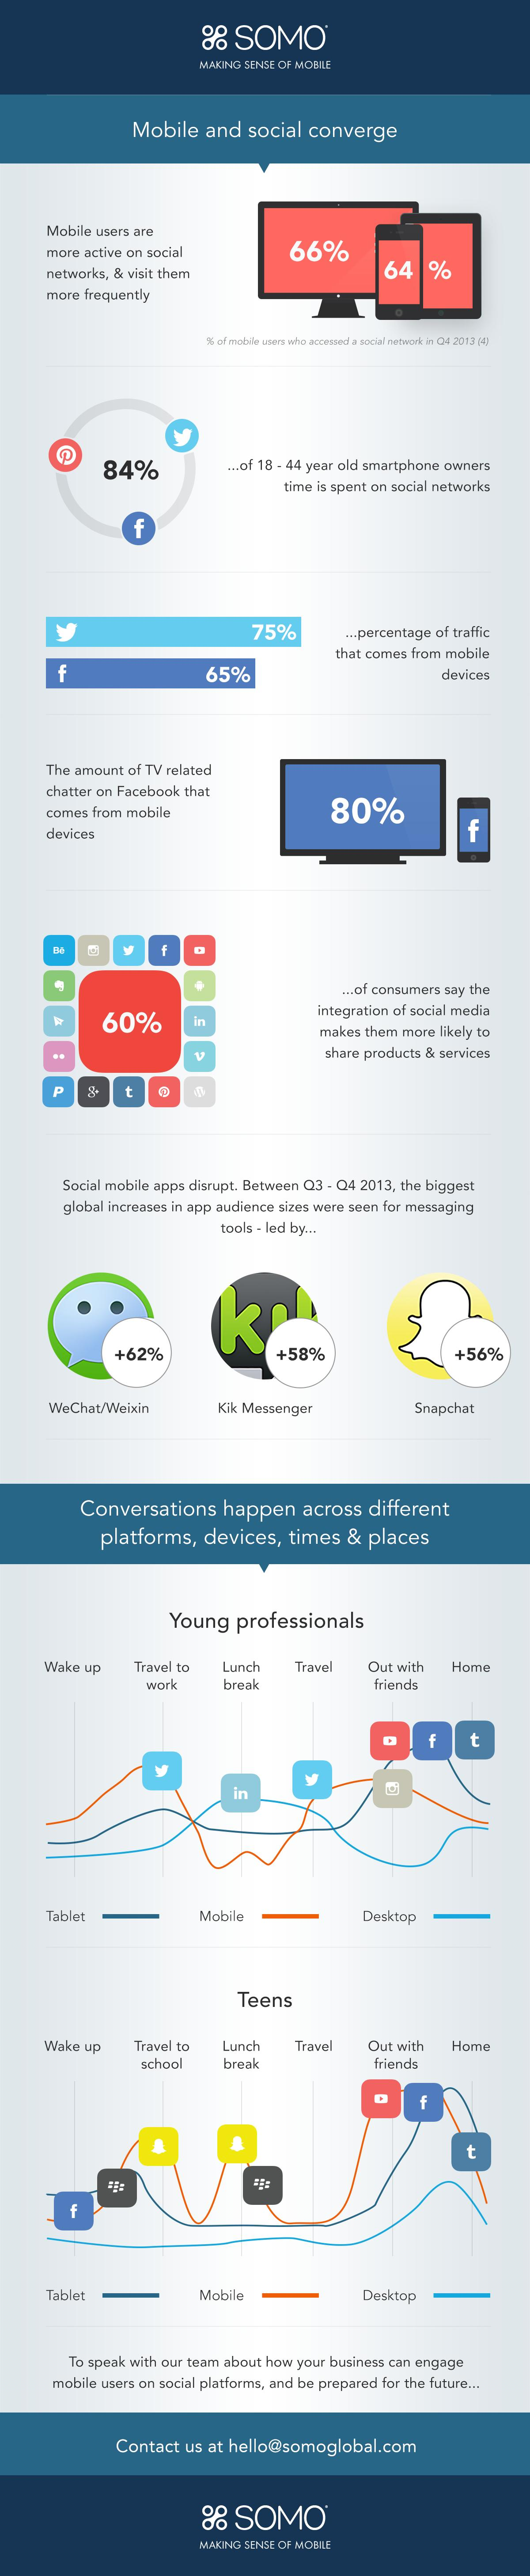 wersm_infographic_mobile_social_marketing